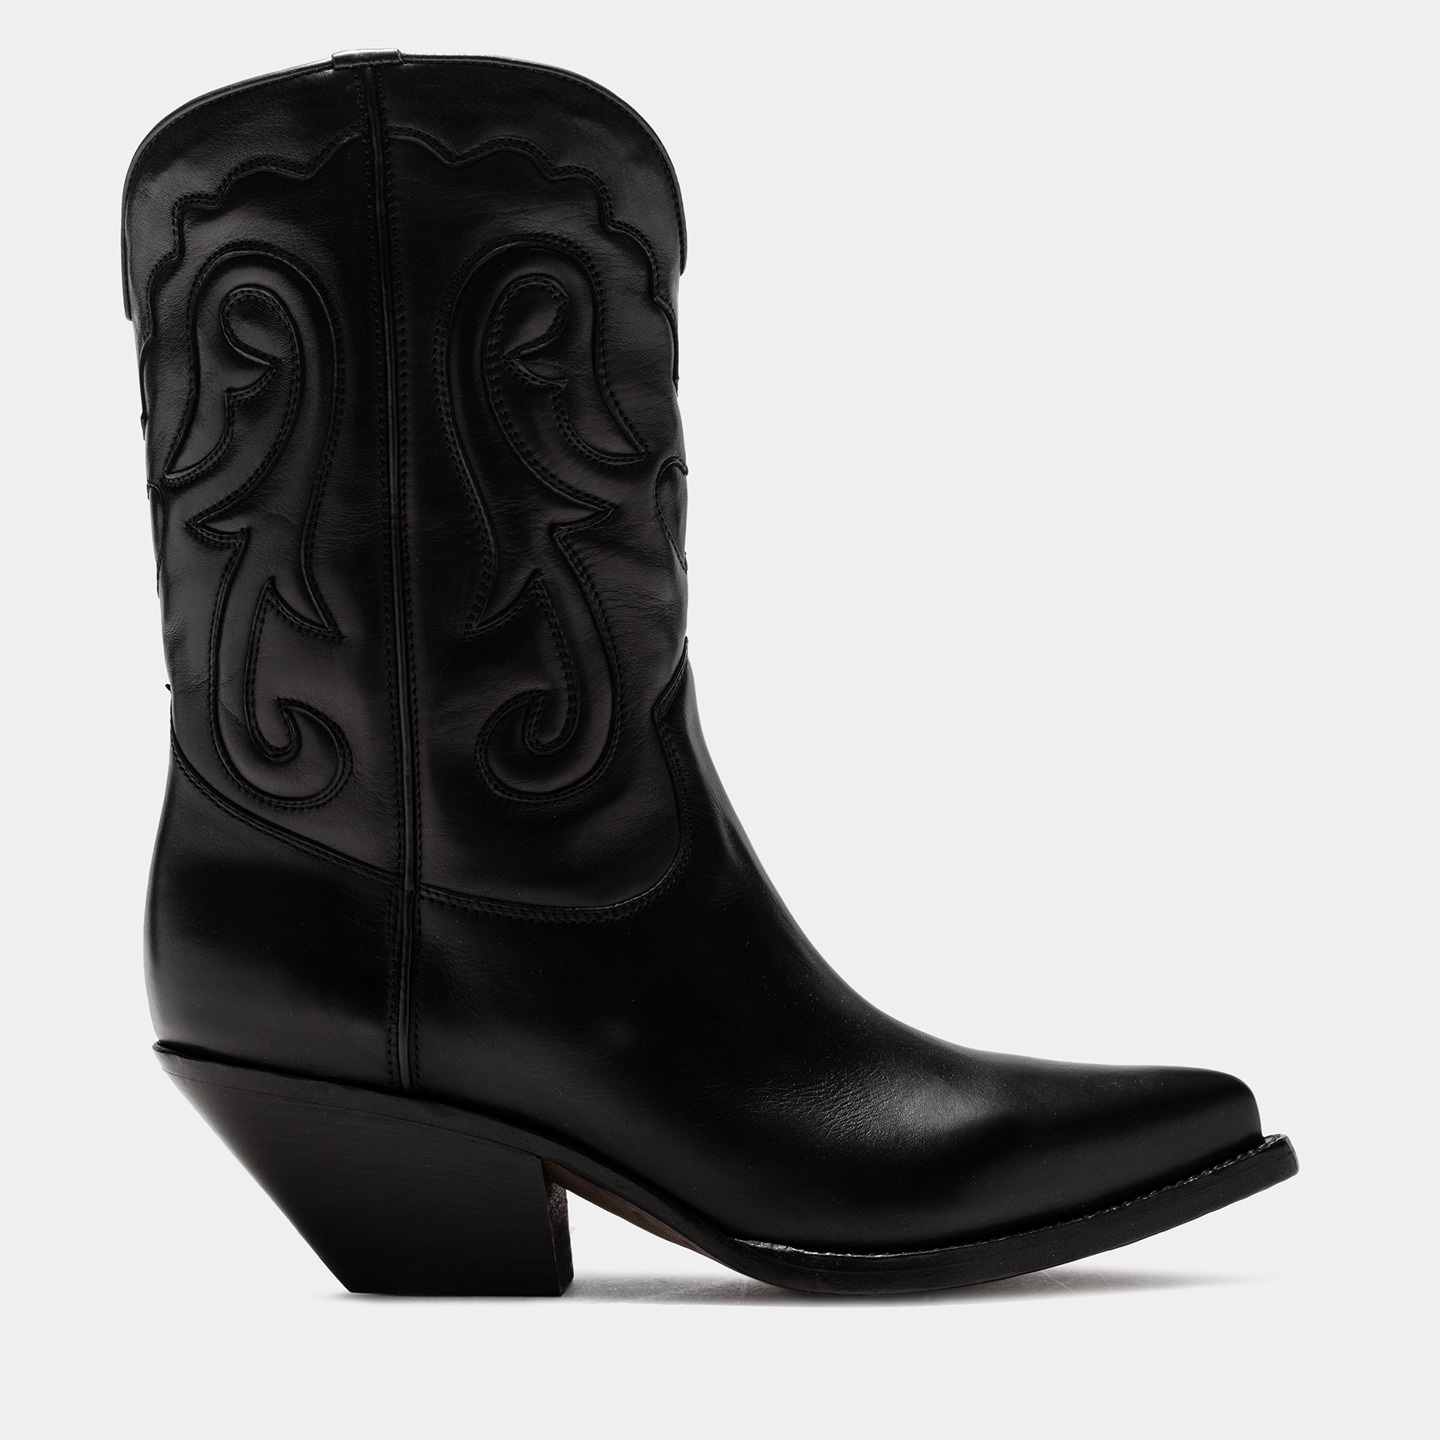 BUTTERO: ELISE MID TOP DURANGO BOOTS IN BLACK LEATHER